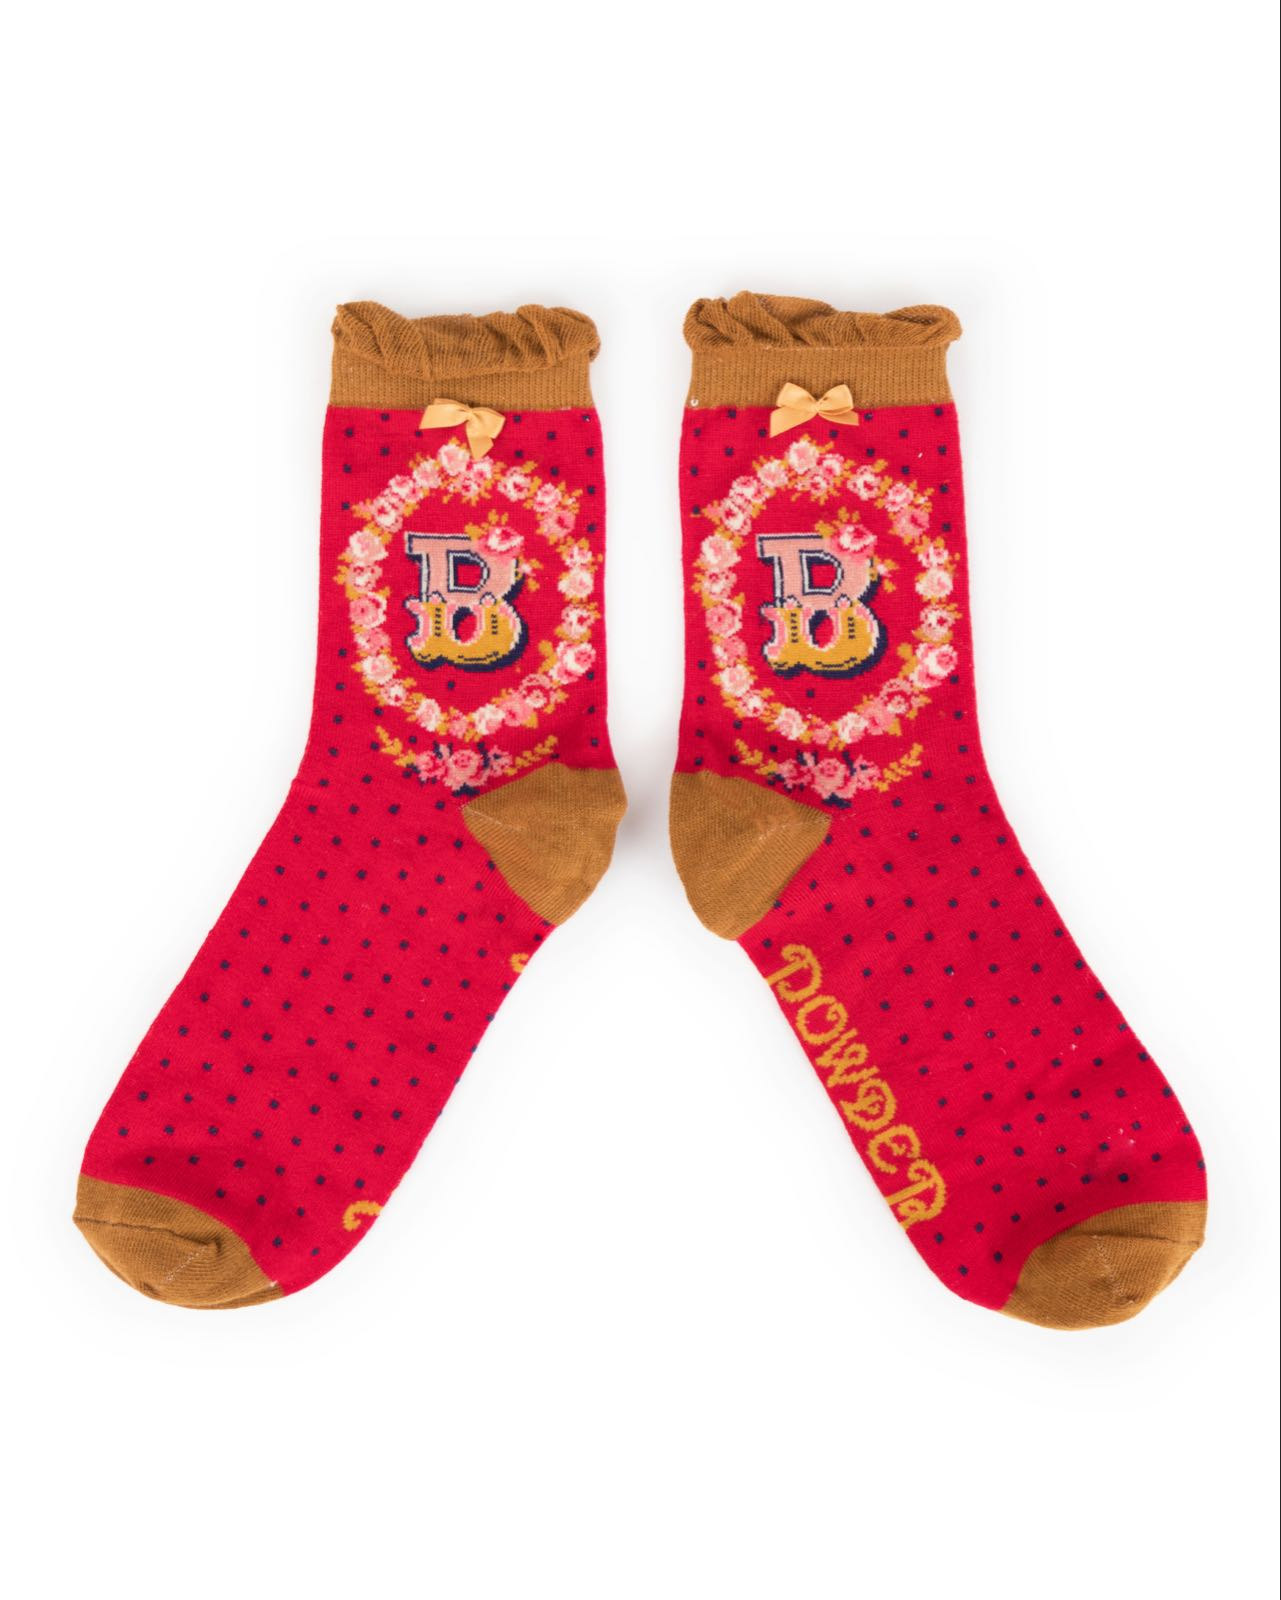 Powder Alphabet socks B (product may differ from item shown in the photo)